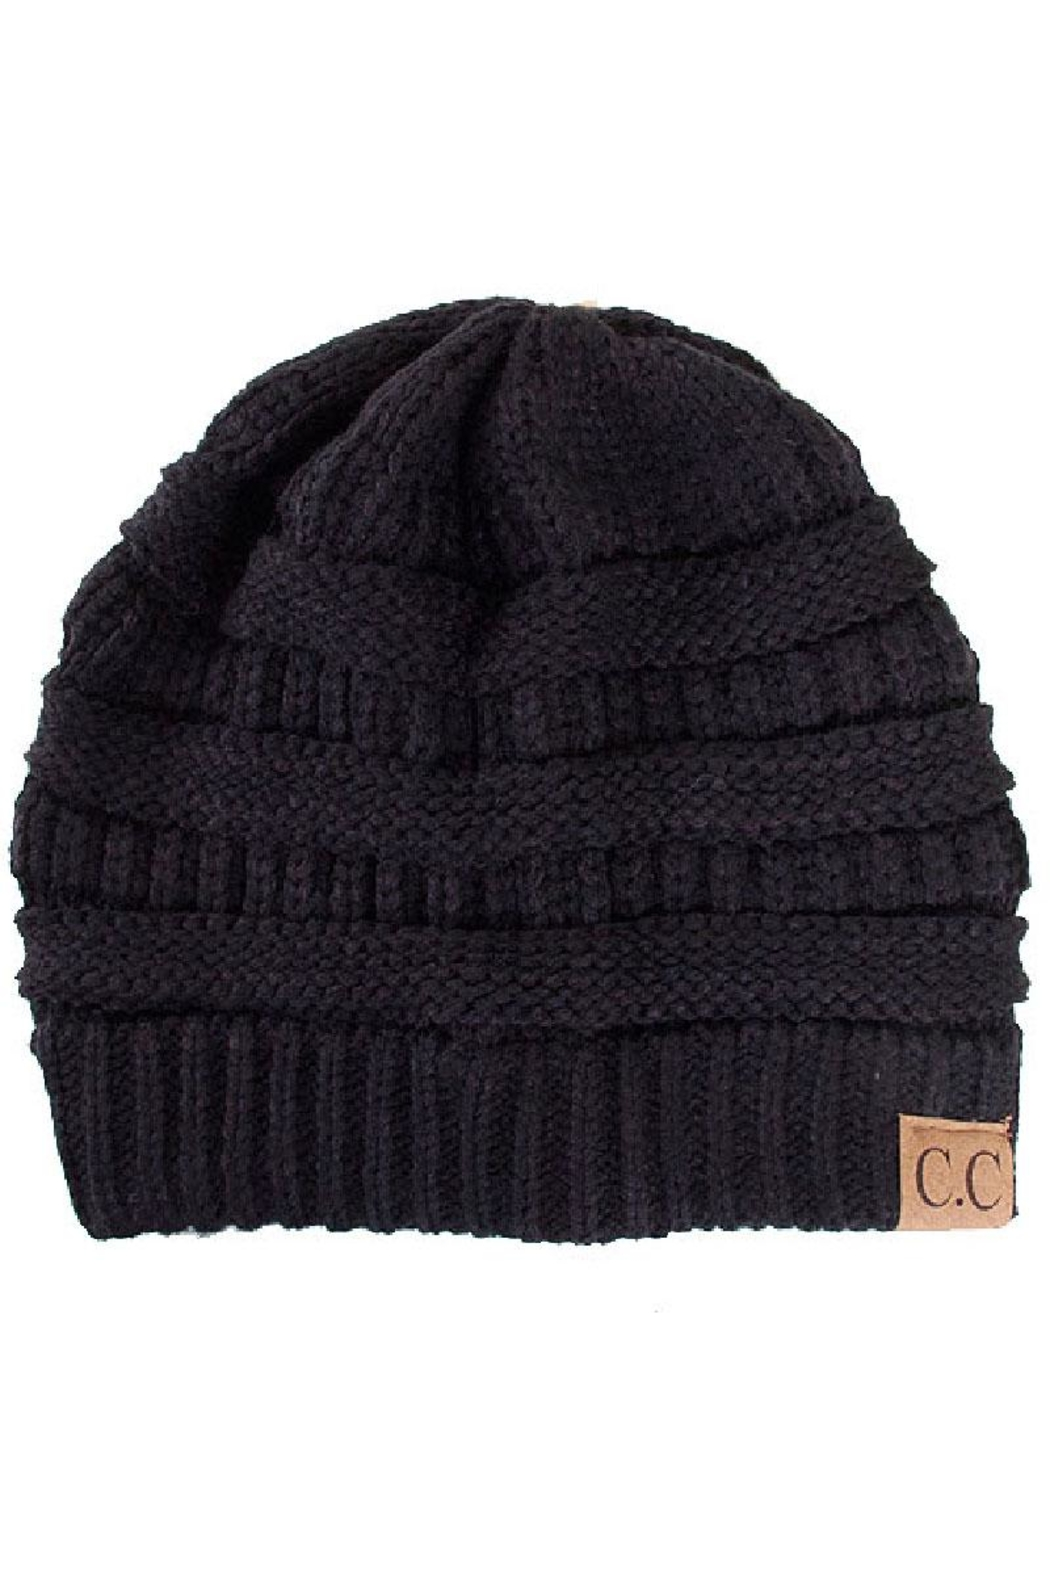 C.C. Black Knit Beanie - Main Image